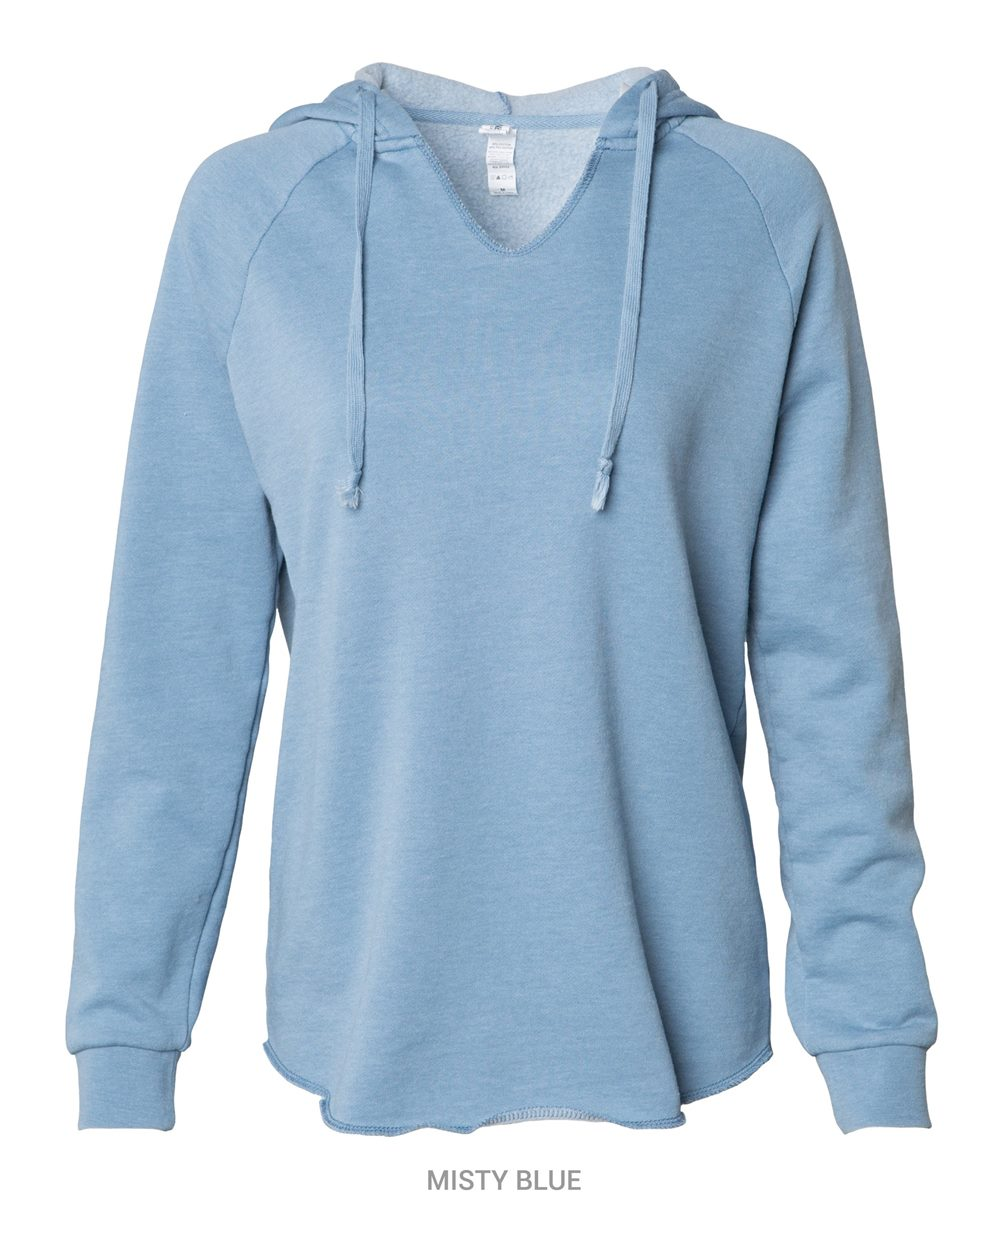 click to view Misty Blue